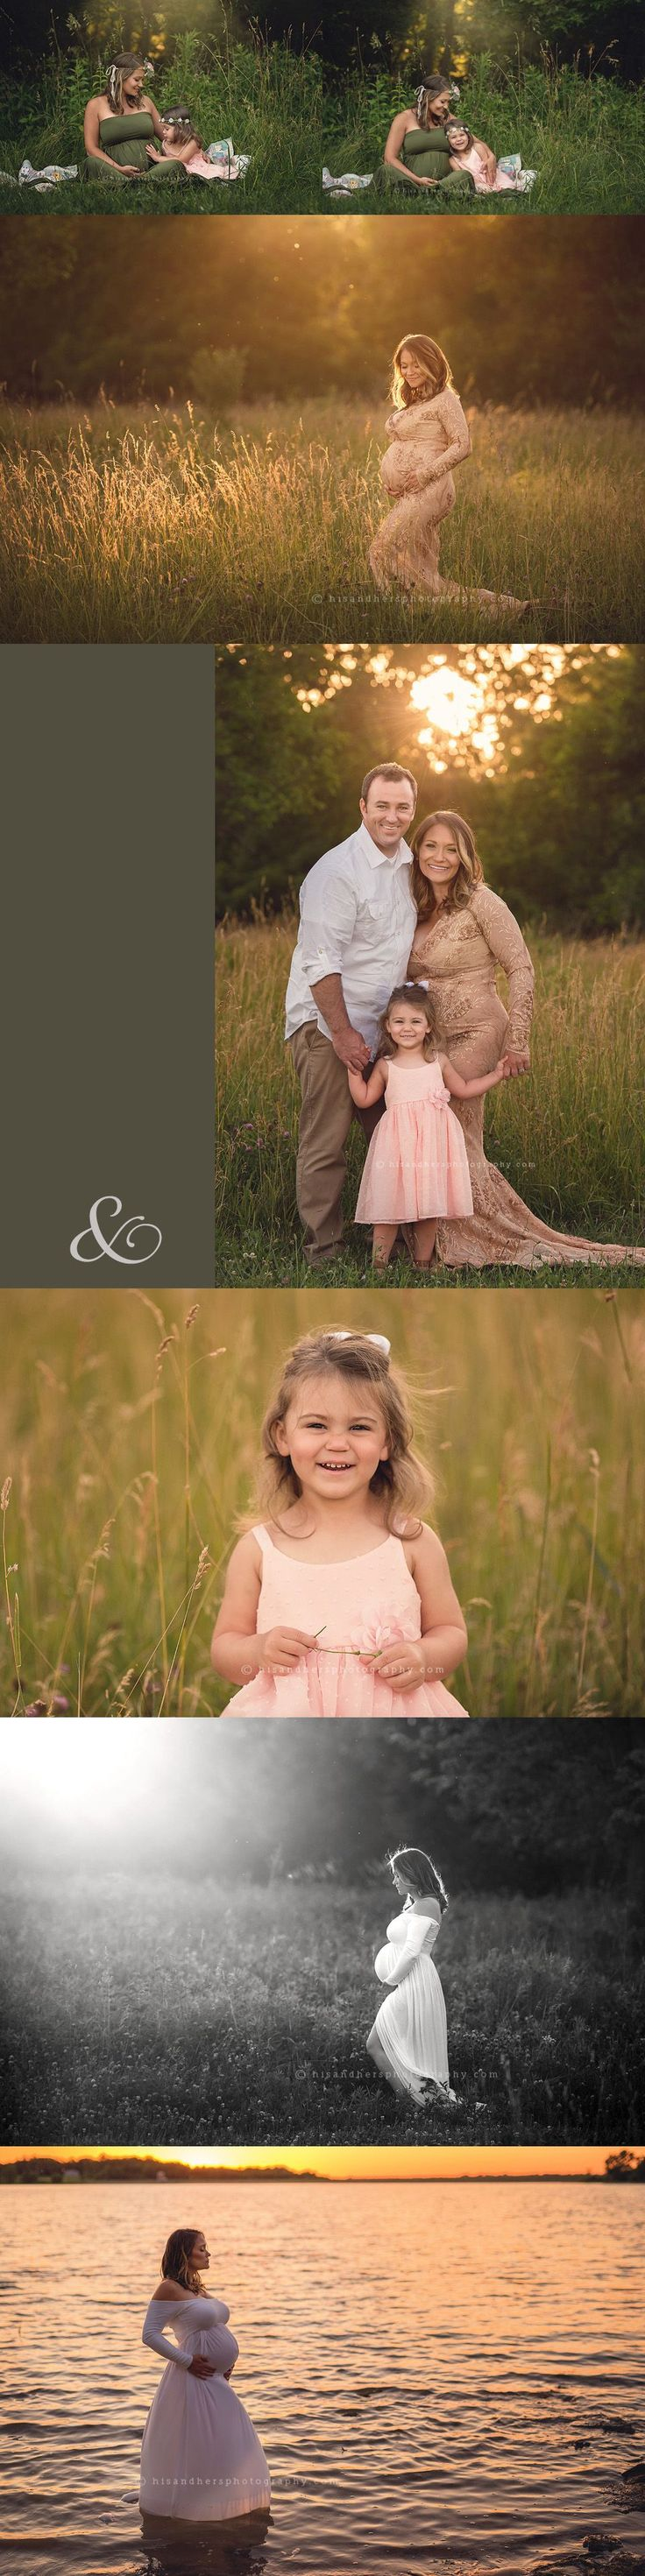 Des Moines, Iowa maternity photographer, Darcy Milder | His & Hers photography & design